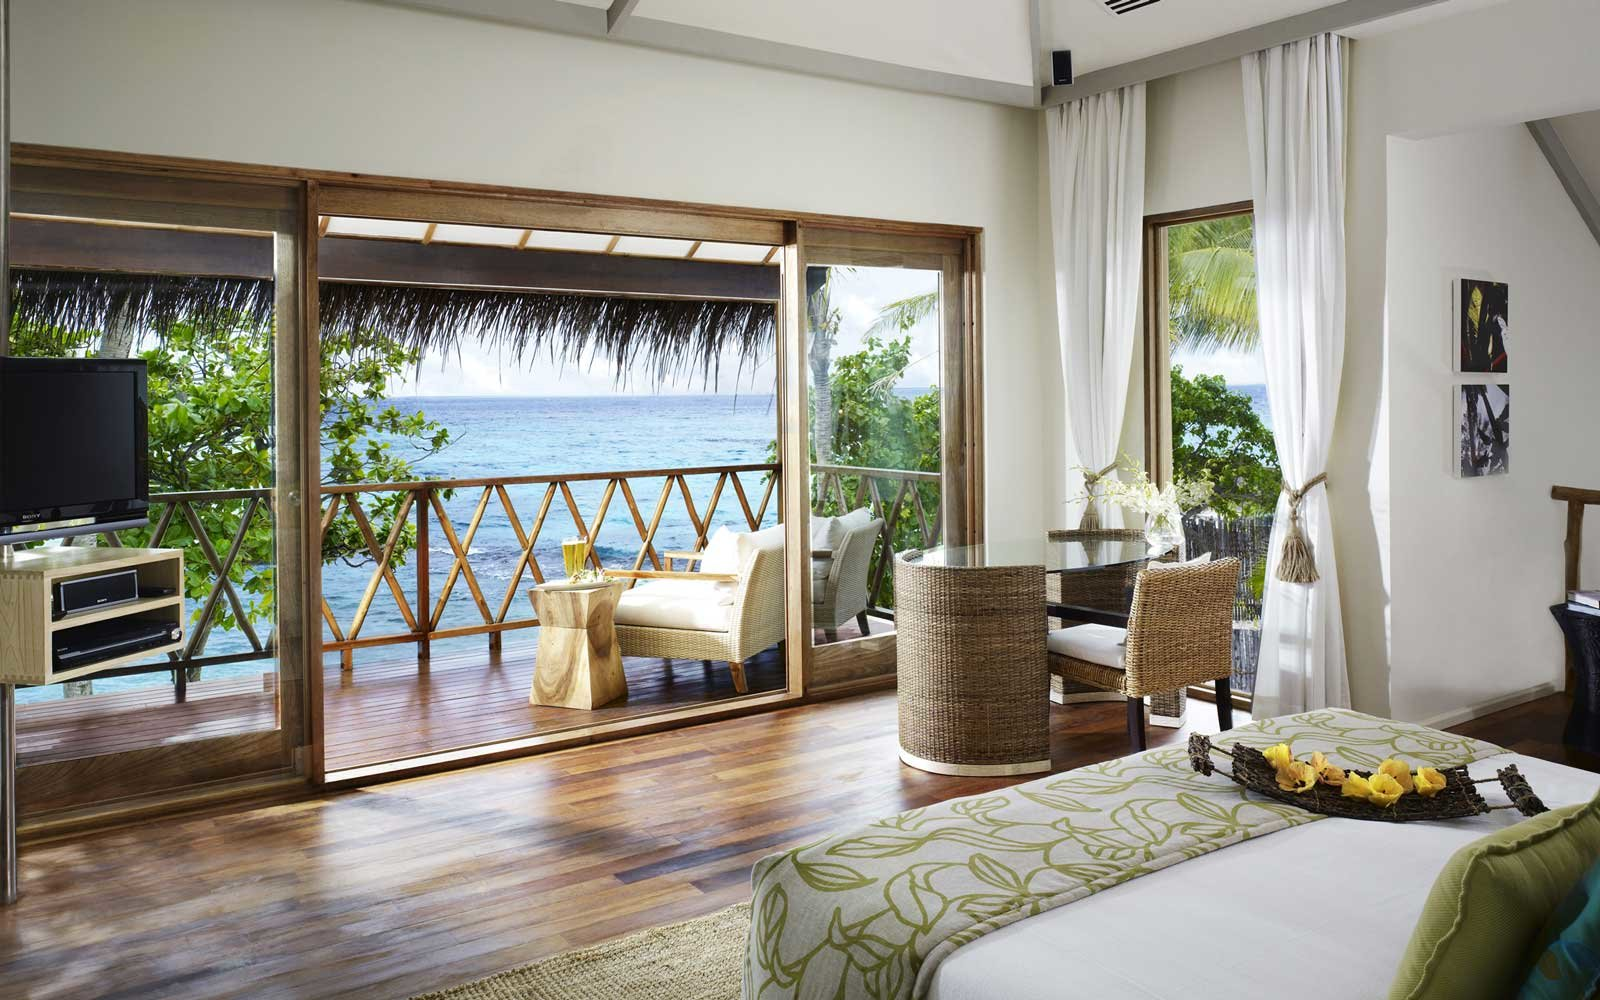 The ultimate dream hotels for honeymoons